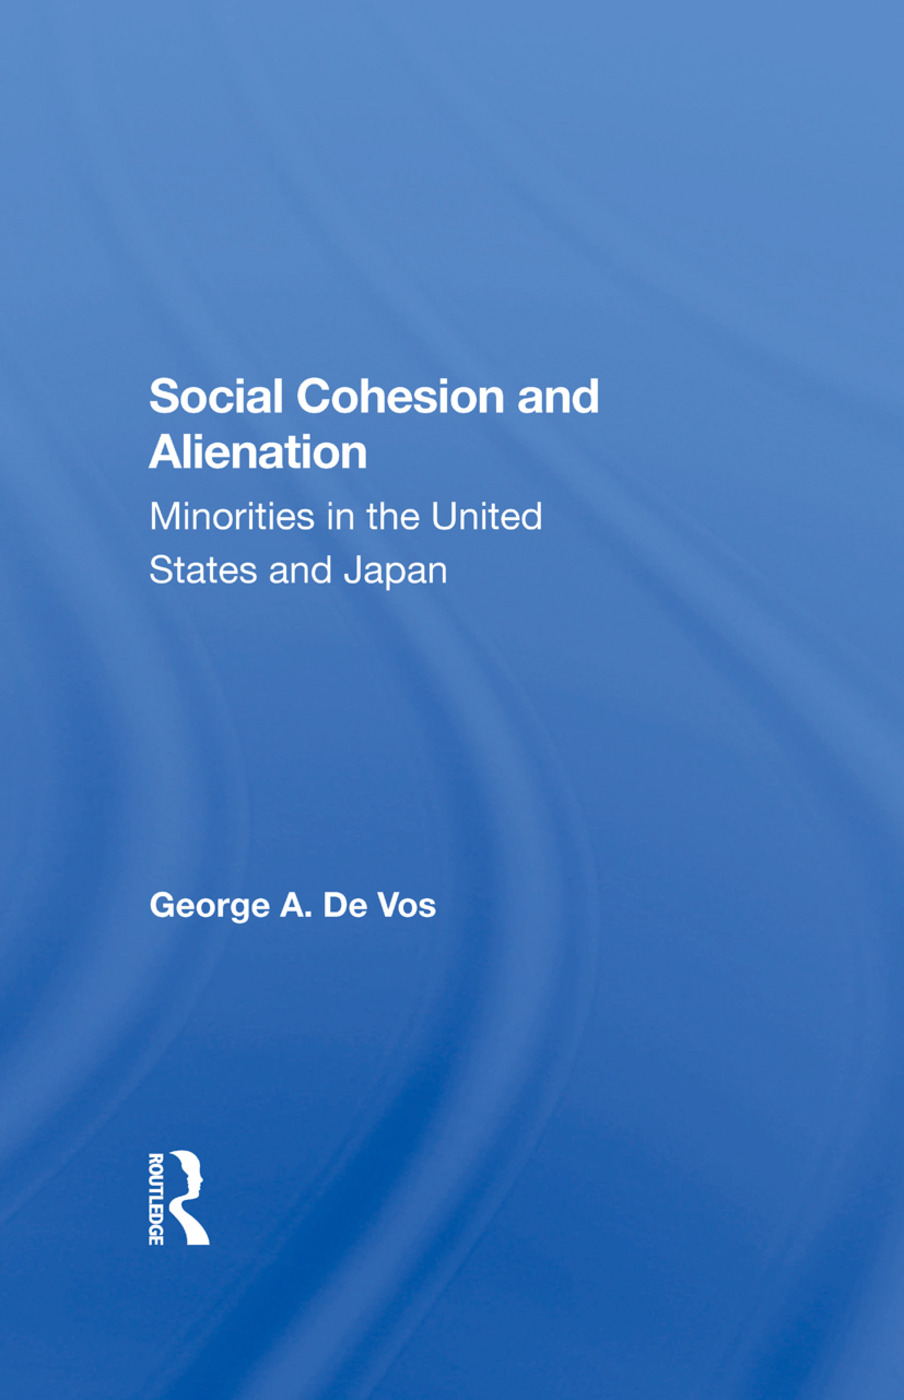 Social Cohesion and Alienation